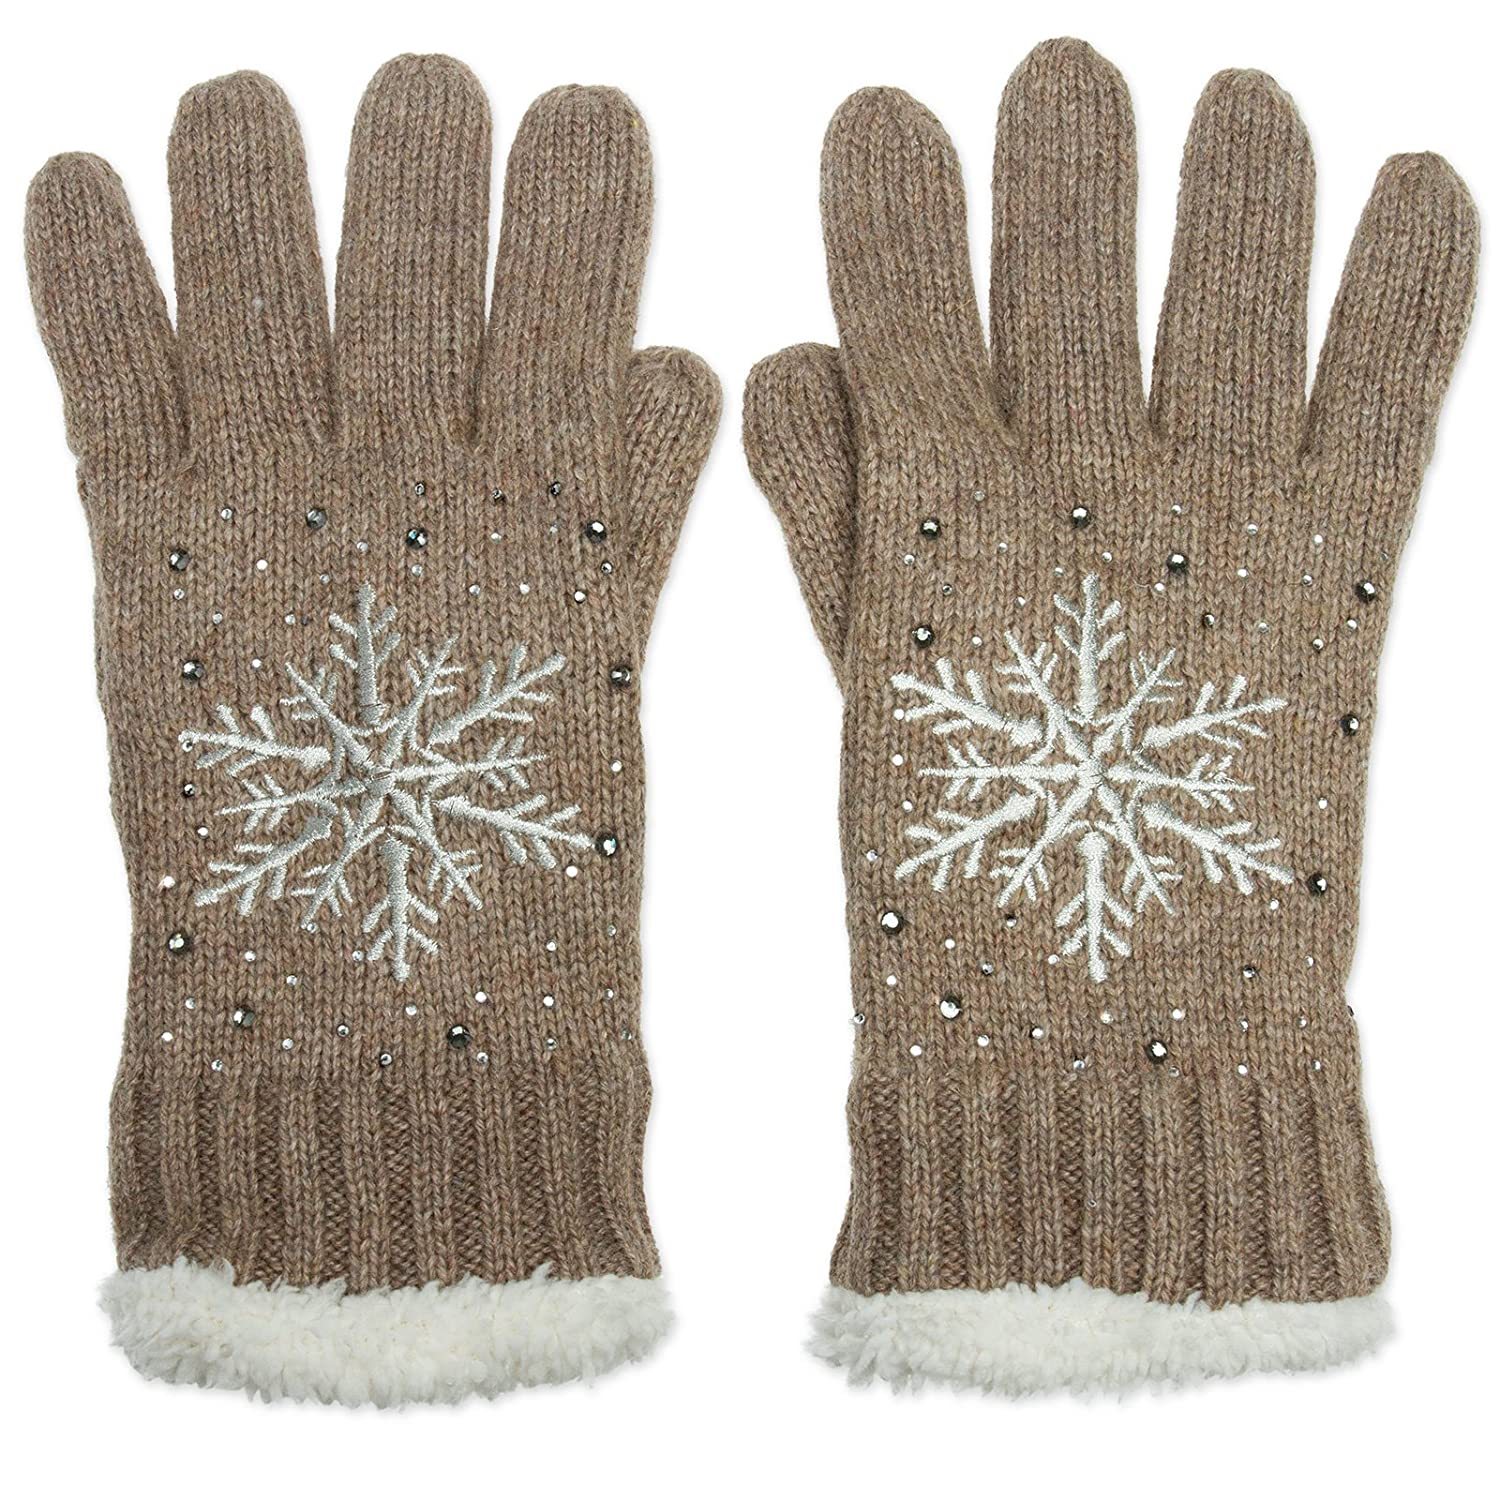 CASPAR GLV009 Women Knitted Thermal Winter Gloves with Snowflake Pattern and Strass